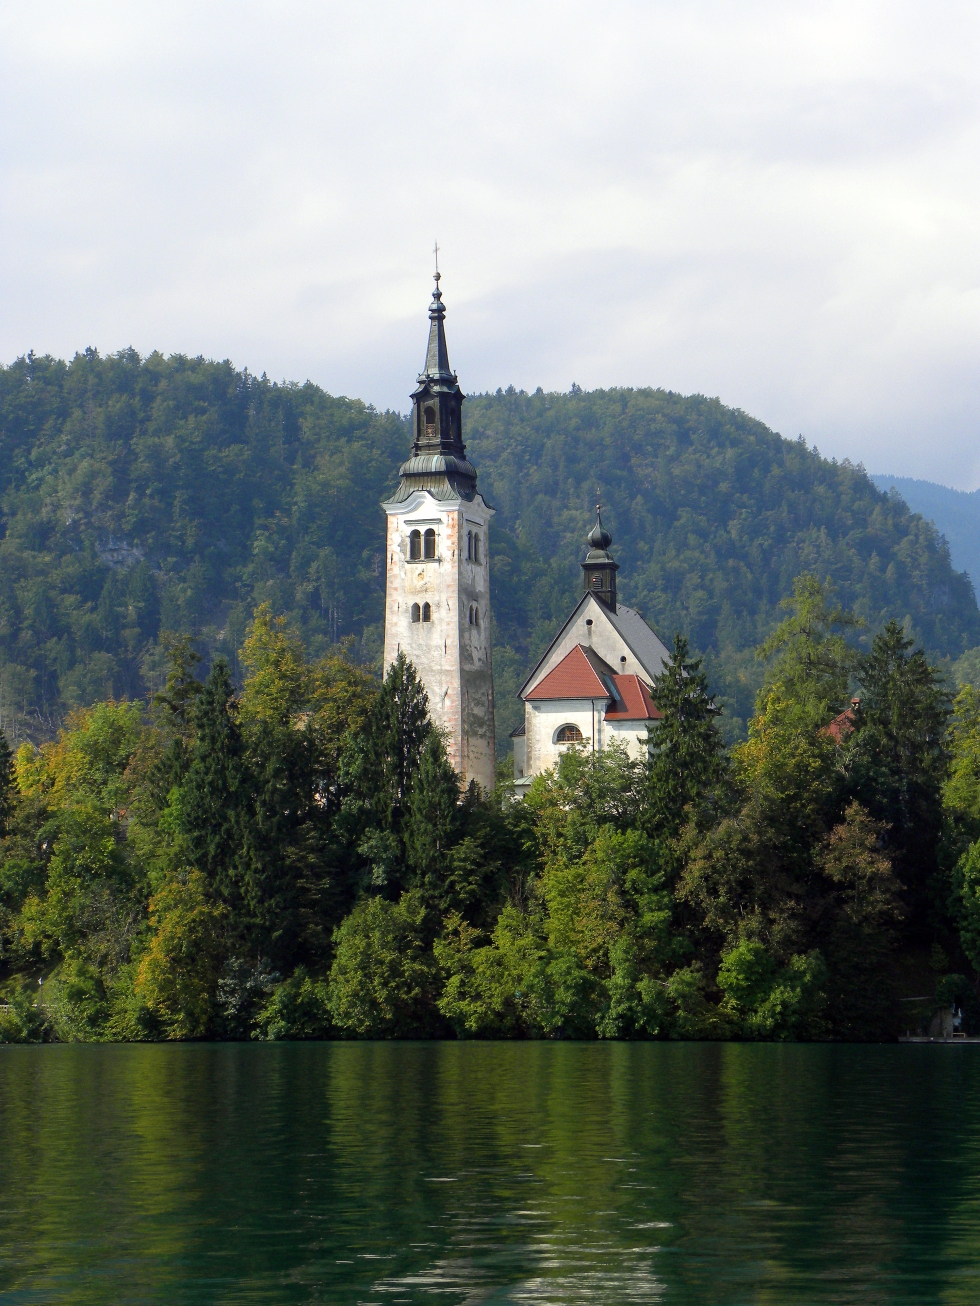 The picturesque Church of the Assumption sits in the middle of an alpine lake in the fairytale town of Bled, Slovenia